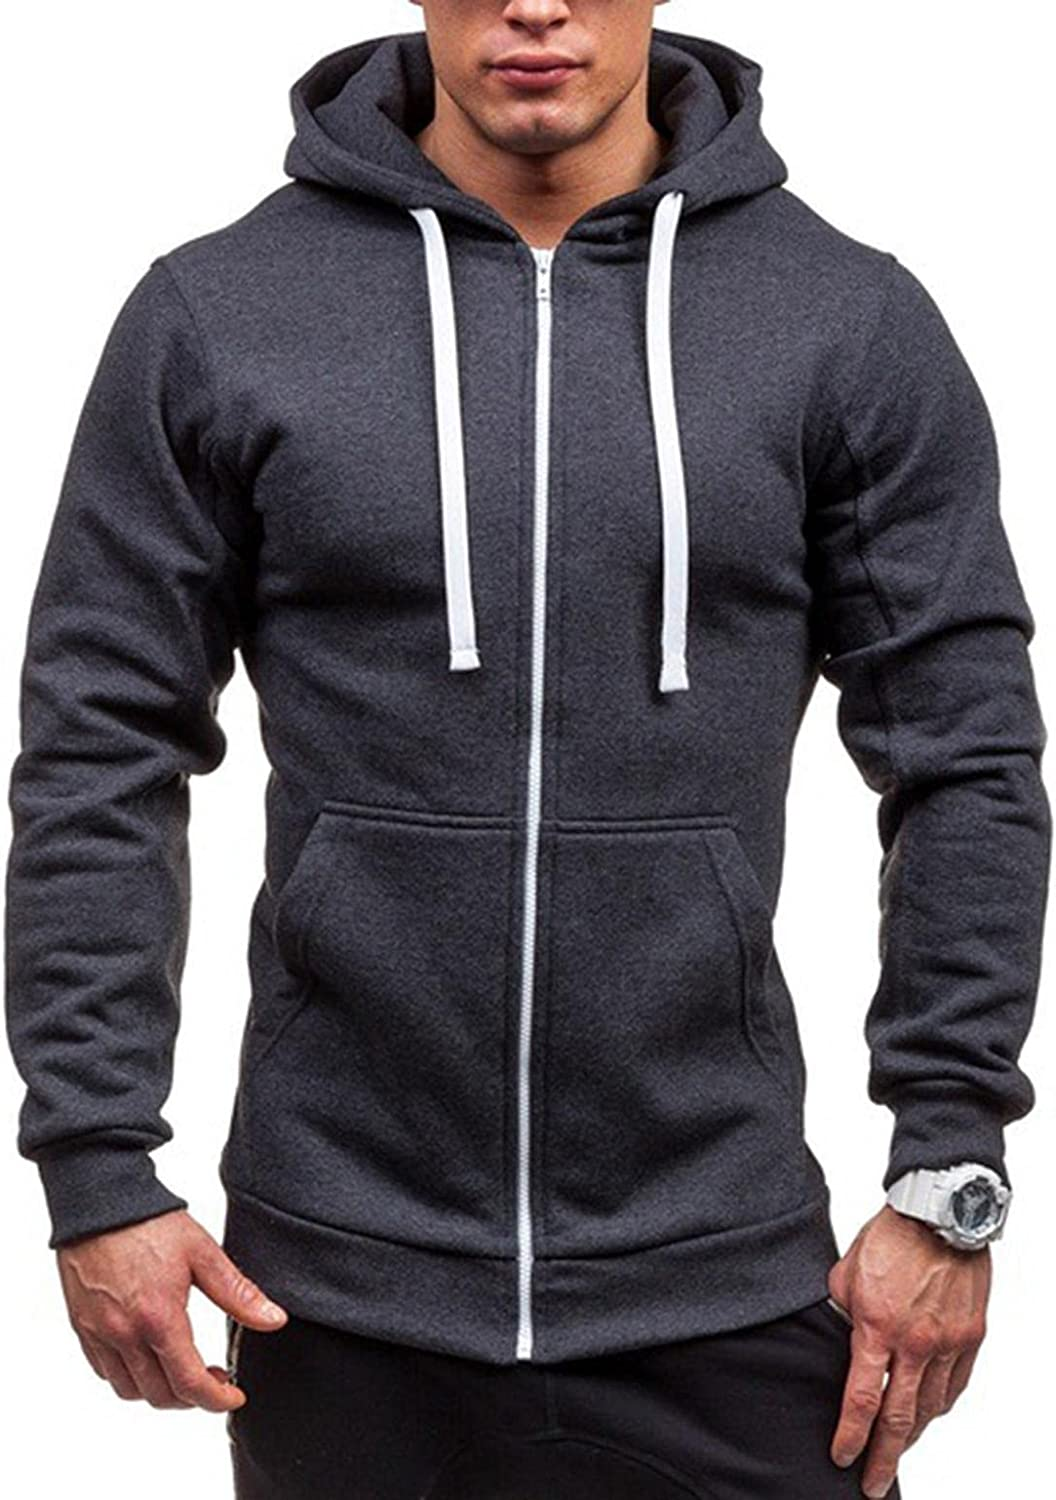 NOLDARES Hoodies for Men Fashion Quality Max 41% OFF inspection Zip Mens Drawstring Up